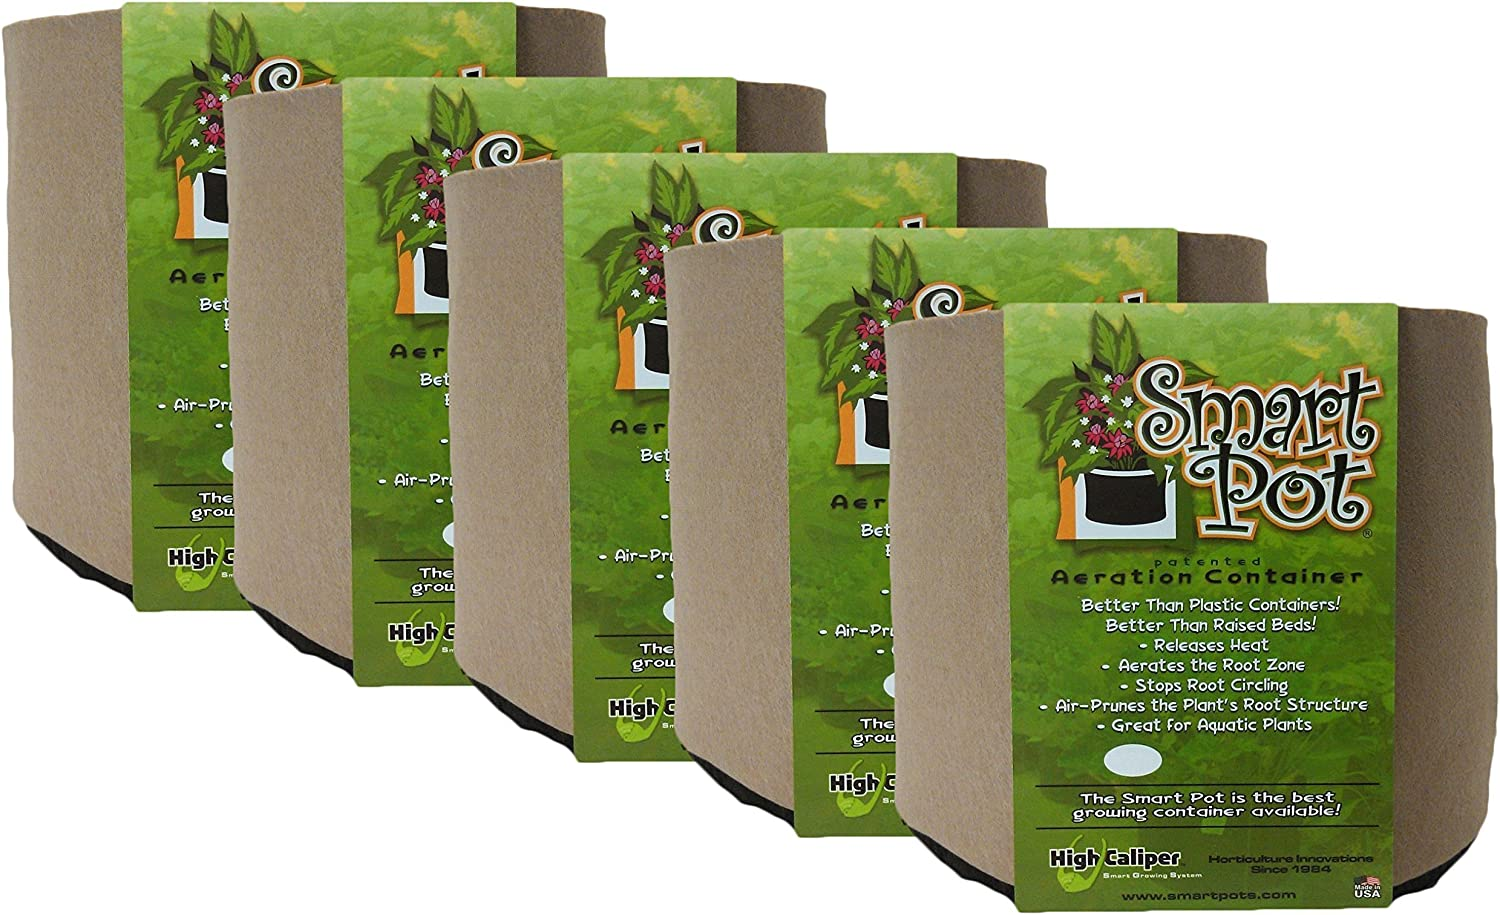 Smart Pot Soft-Sided Fabric Garden Plant Container Aeration Planter Pots, Tan, 1 gallon, 5 Pack